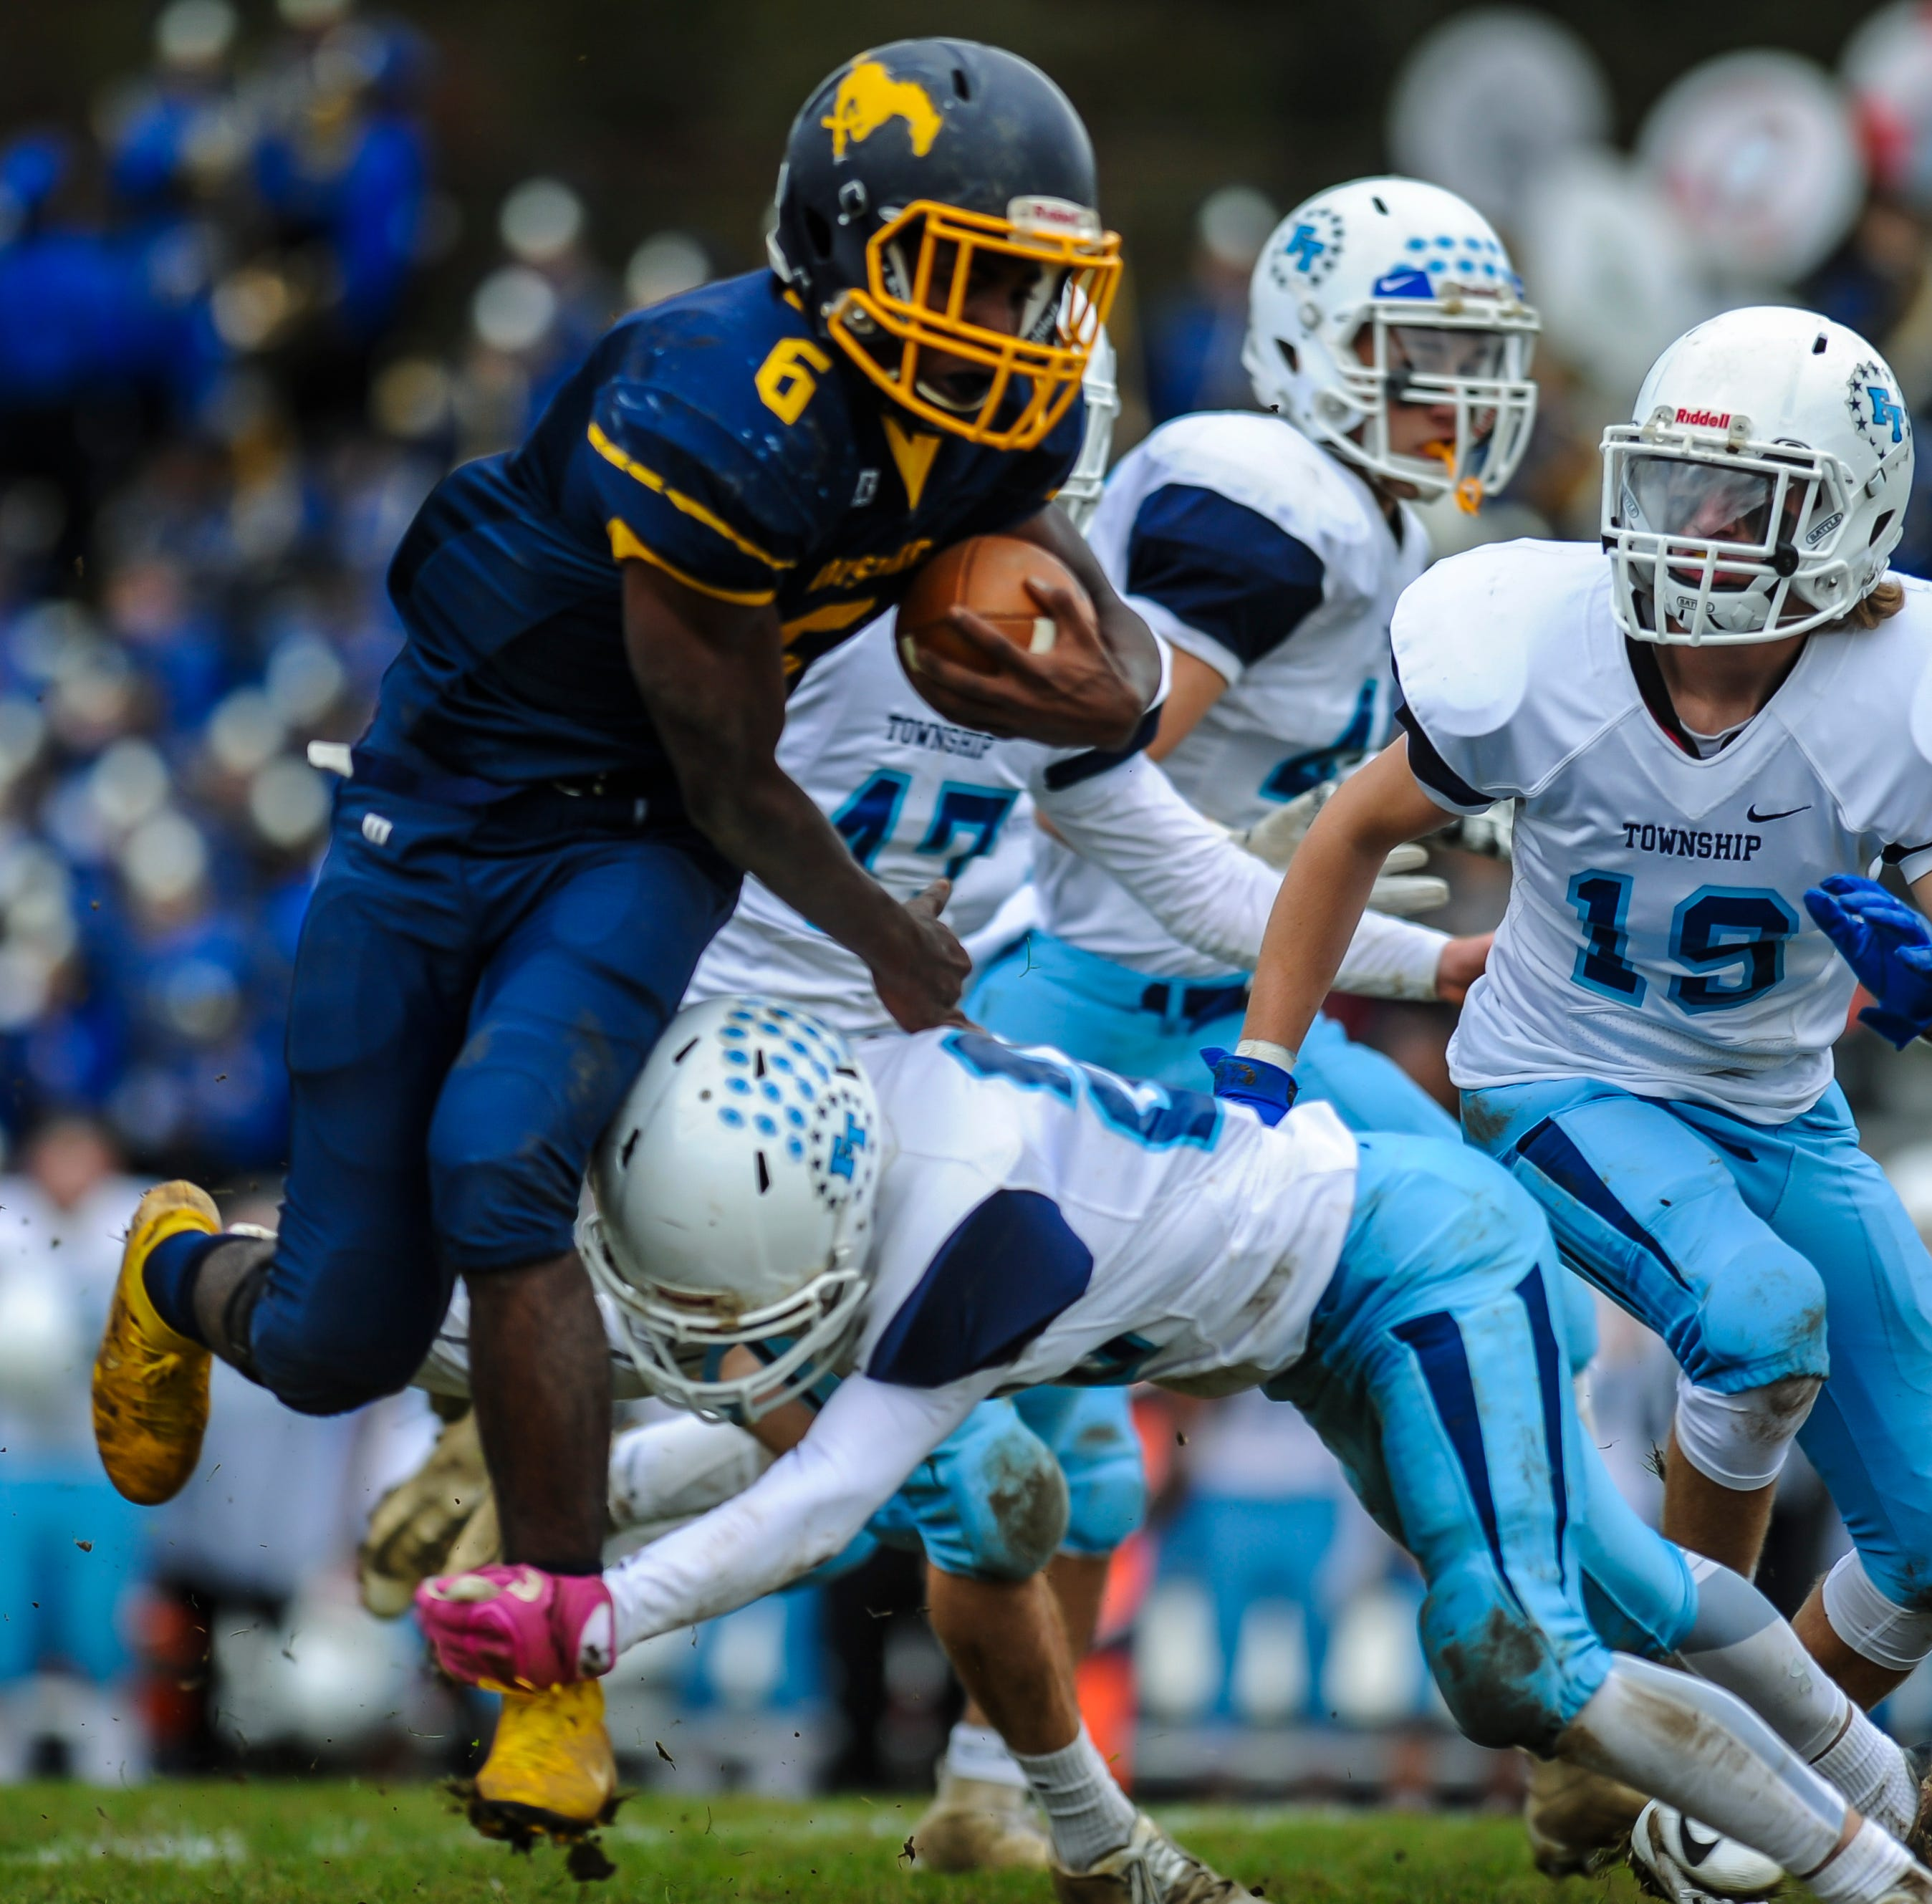 NJ football: Marlboro upsets Freehold Township on interceptions, Alston's running